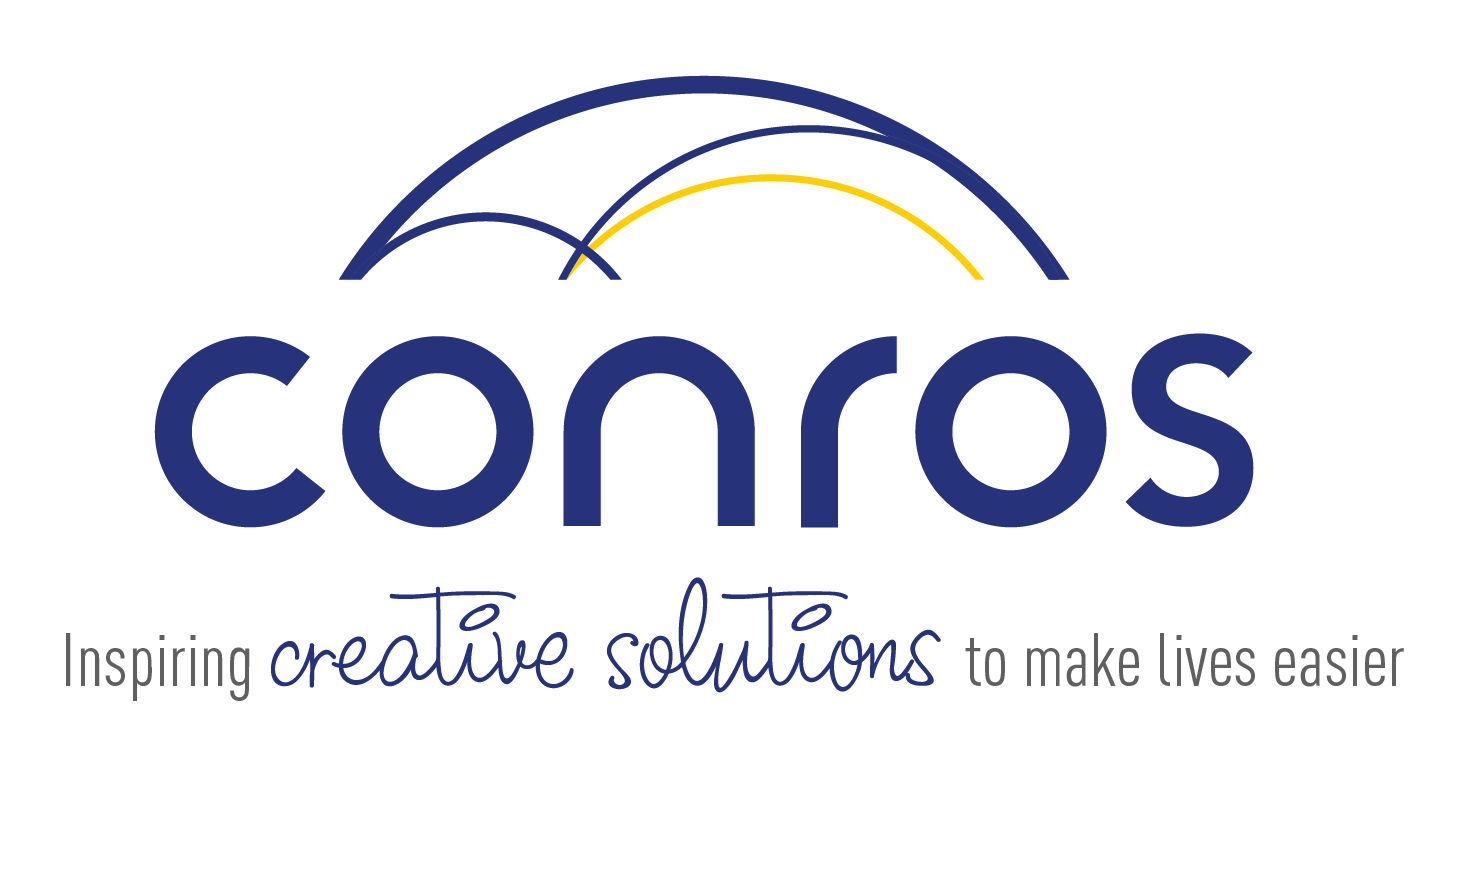 Conros Inspiring creative solutions to make lives easier